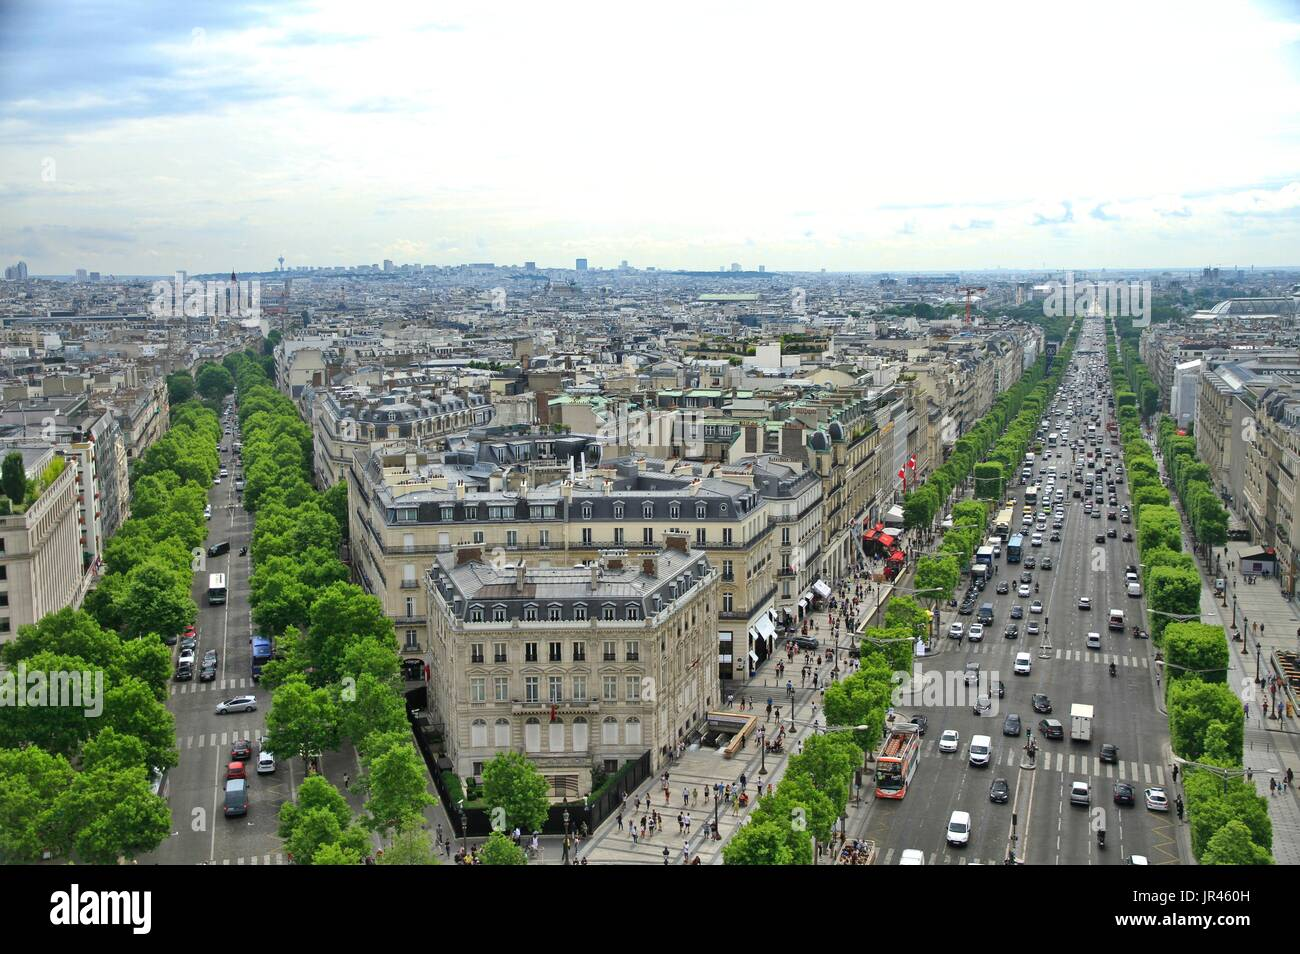 Paris France Green Neighborhood Housing Stockfotos & Paris France ...